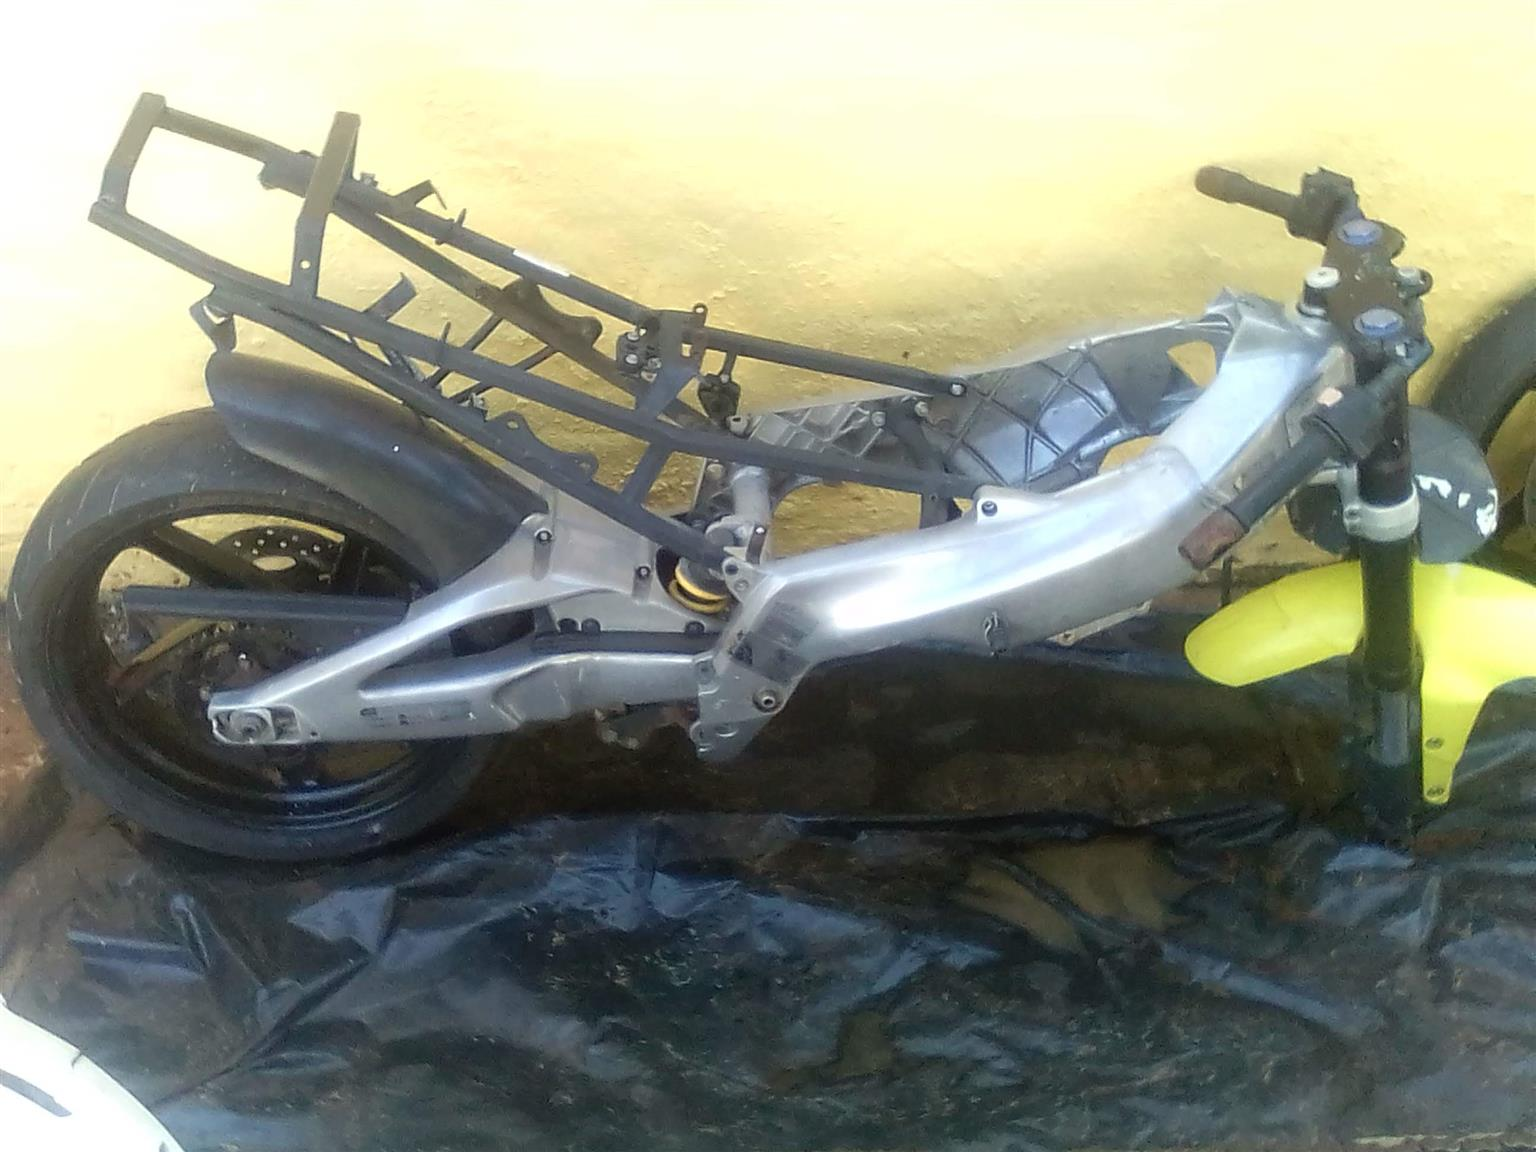 URGENT !! APRILIA RS 125 FRAME, RIMS, CHAIN AND CLOCK HOUSE